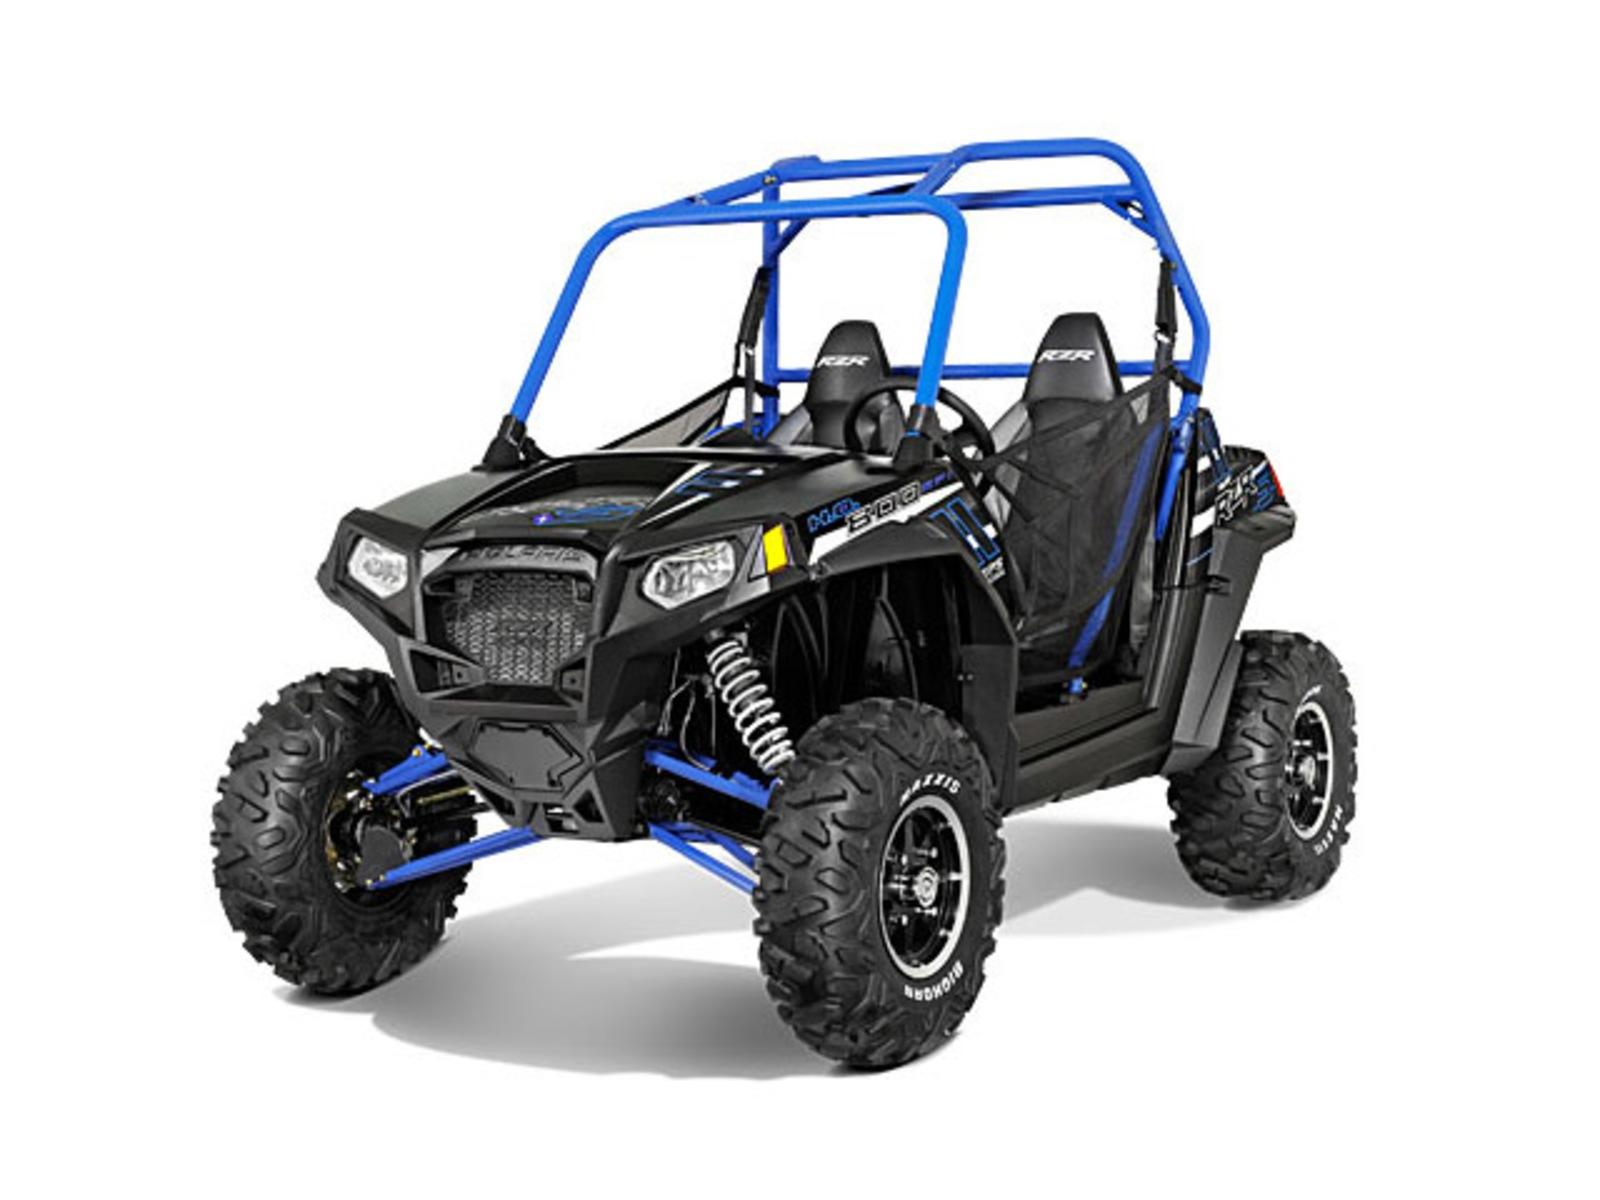 2014 polaris rzr s 800 eps review top speed. Black Bedroom Furniture Sets. Home Design Ideas